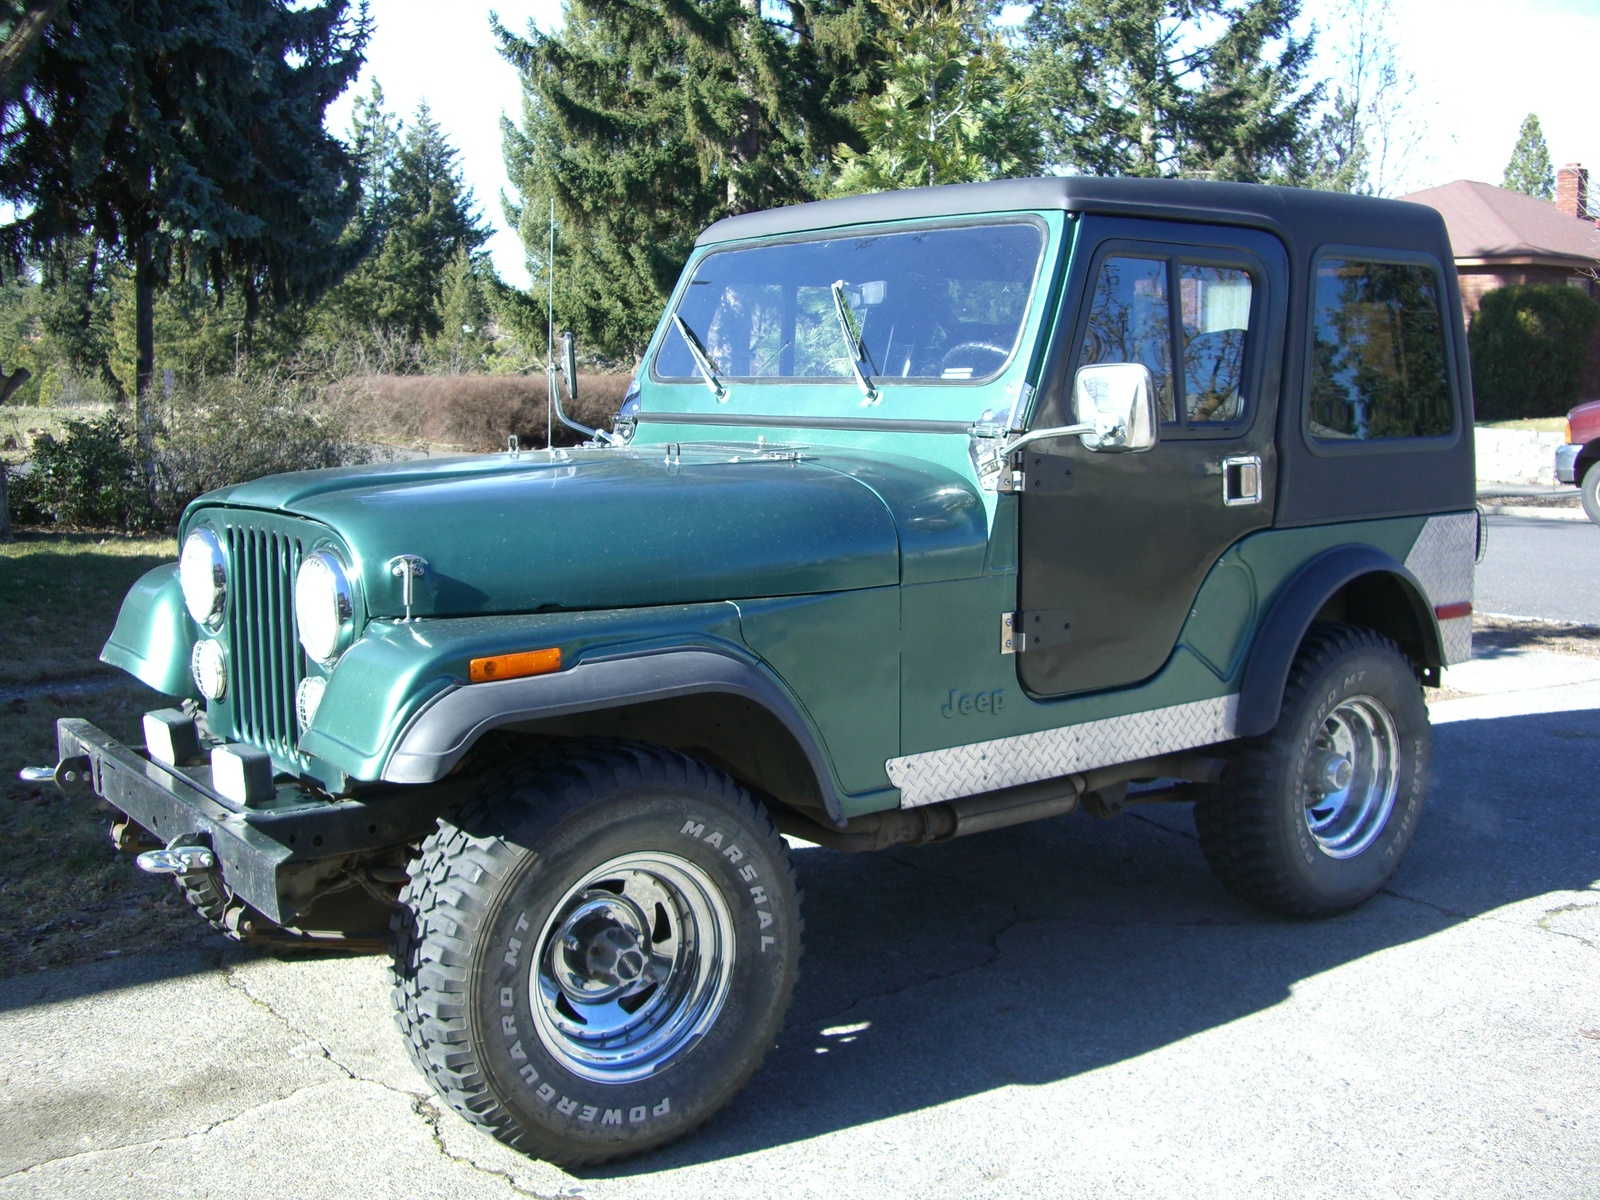 Jeep Cj 5 Questions I Have A 1980 Cj5 W 304v8 Ive Replaced 1974 Solenoid Wiring The Starter All Battery Cables And Ignition Switch But It Wont Even Make